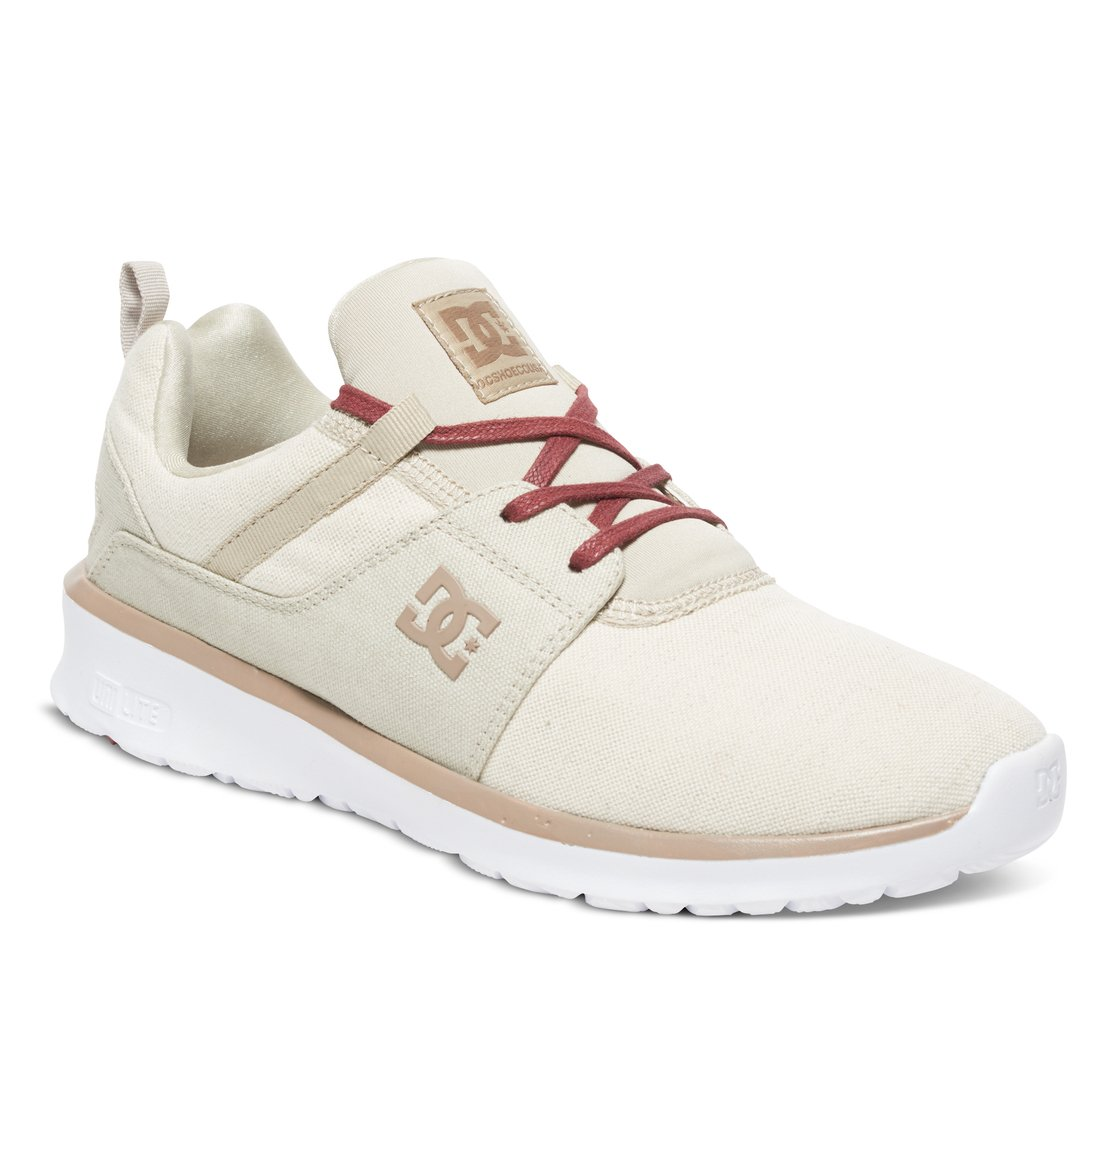 Dc Shoes: Shop for Dc Shoes online at best prices in India. Choose from a wide range of Dc Shoes at failvideo.ml Get Free 1 or 2 day delivery with Amazon Prime, EMI .